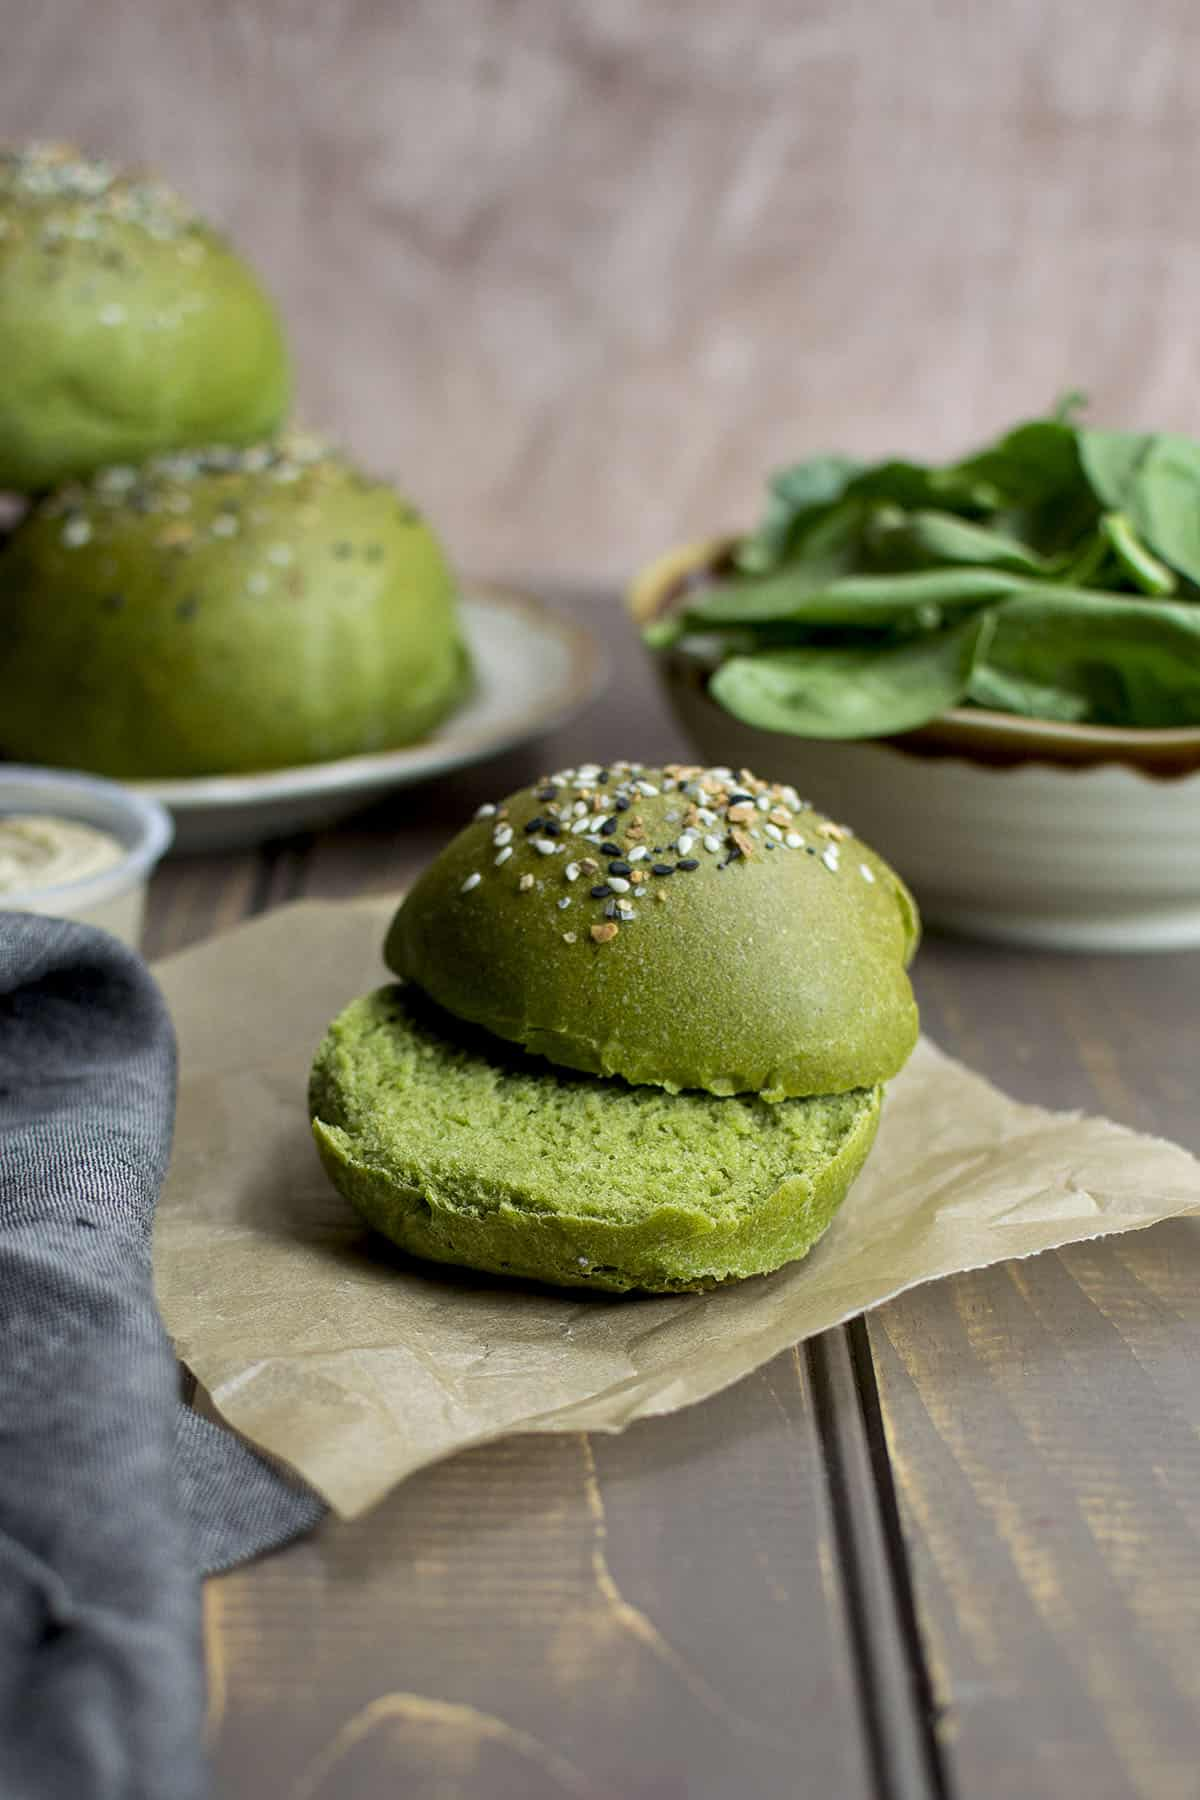 Slit spinach flavored sandwich roll on a parchment paper